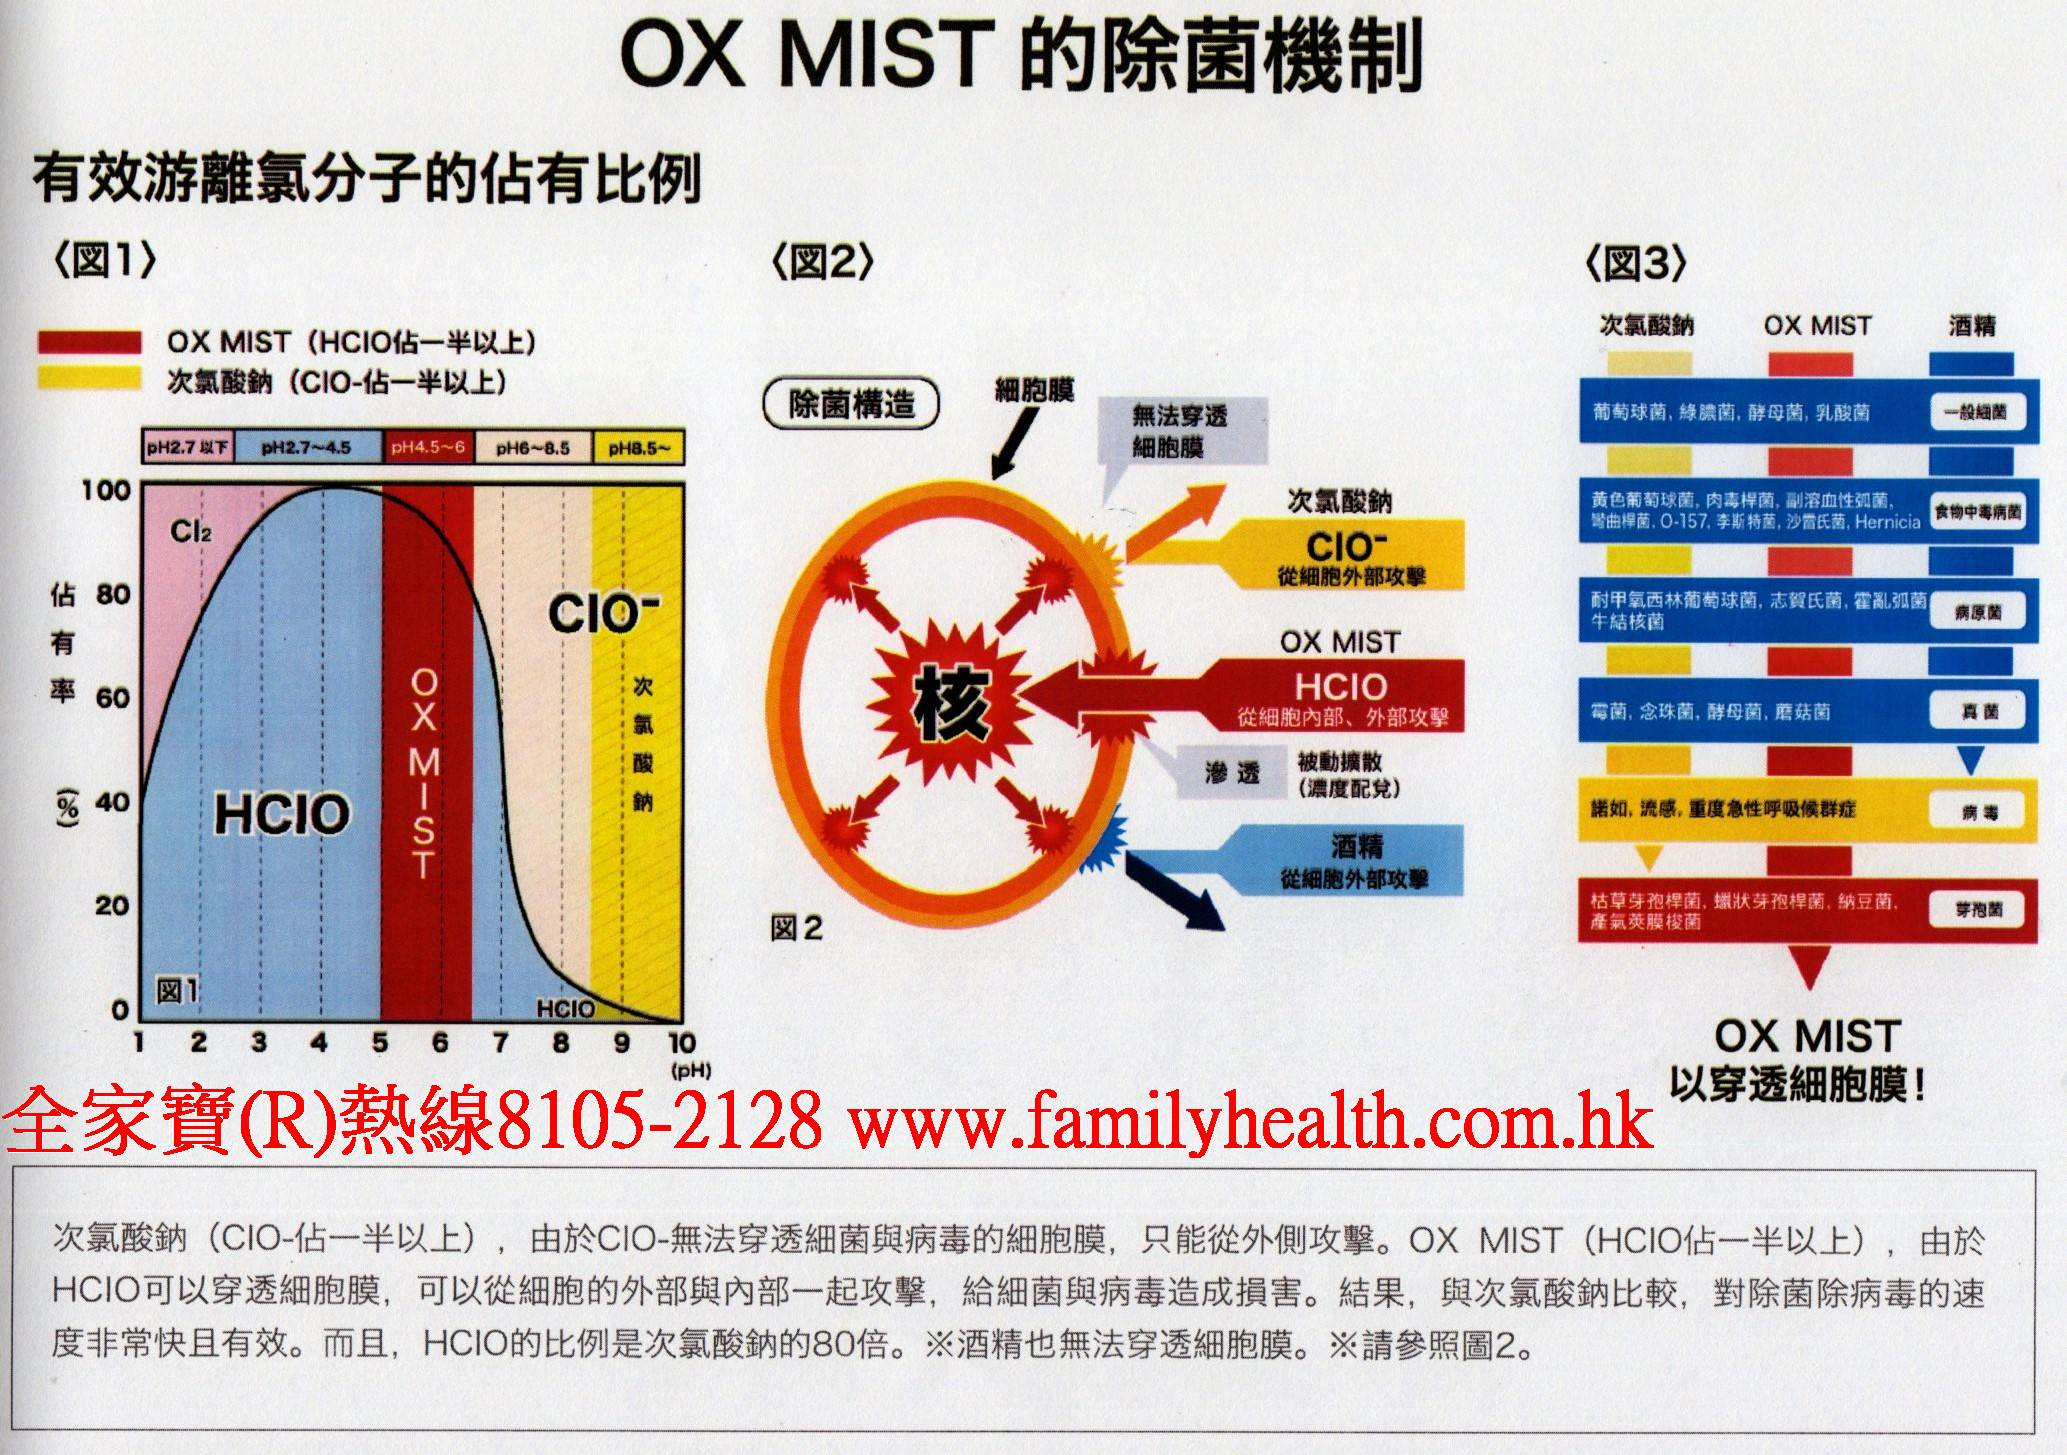 http://www.familyhealth.com.hk/files/full/1083_3.jpg